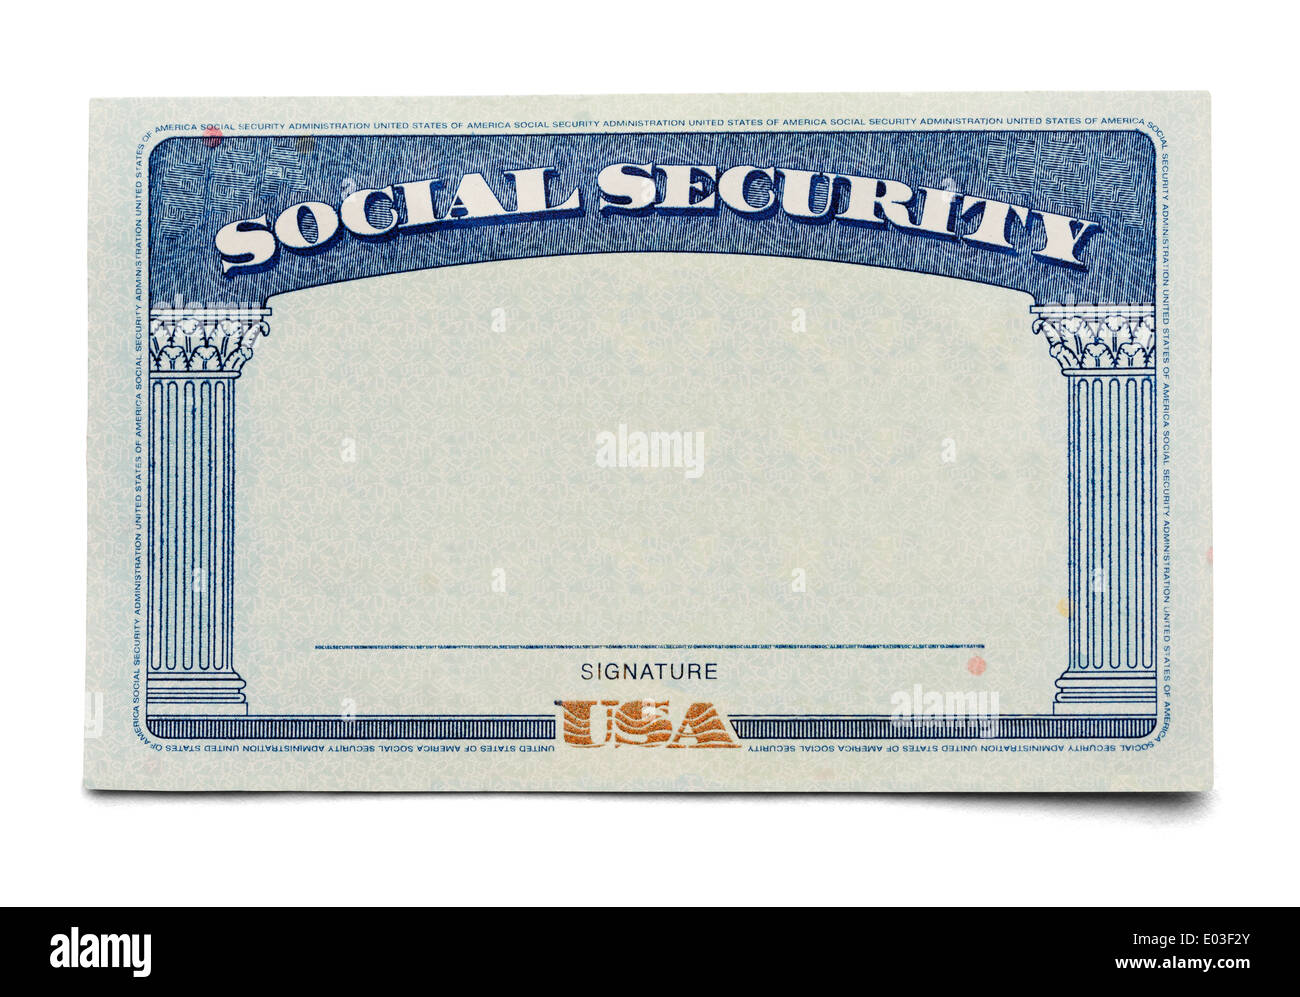 Blank Social Security Card Isolated on a White Background Stock Photo ...